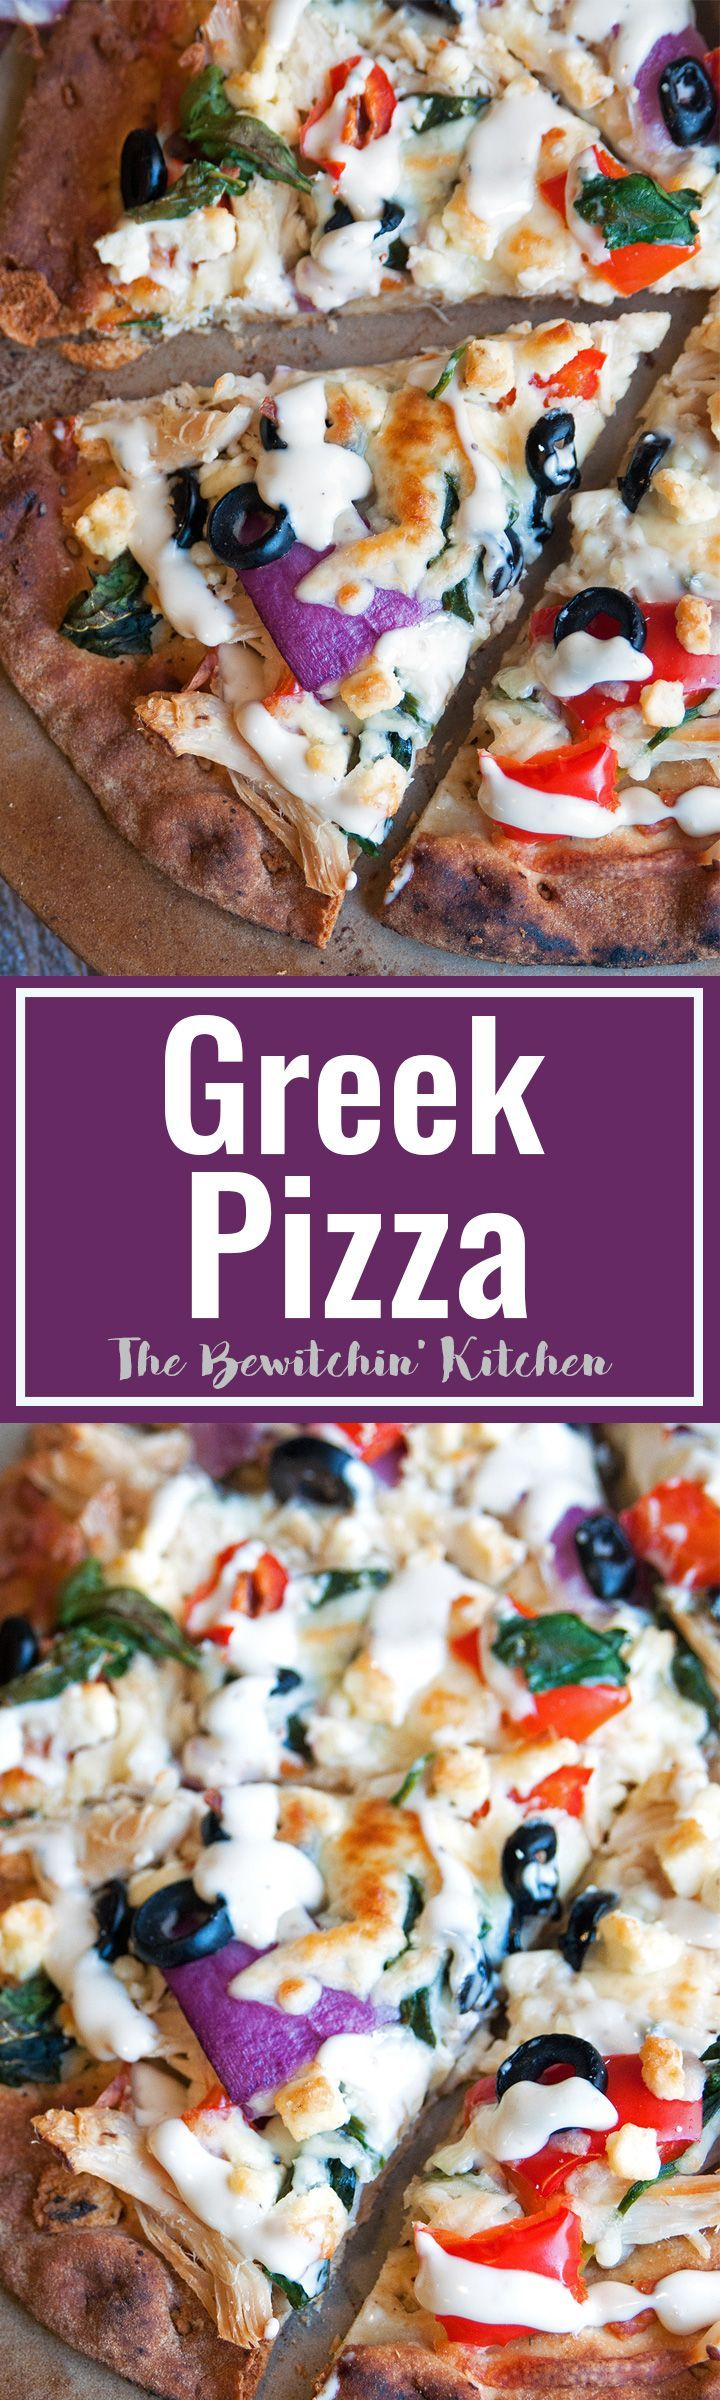 Greek Pizza - pizza crust topped with tangy greek vinaigrette, chicken, red pepper, spinach, olives , purple onion, feta and mozzarella. Finished with a greek tzatziki drizzle. So much yum happening right here. | thebewitchinkitch...